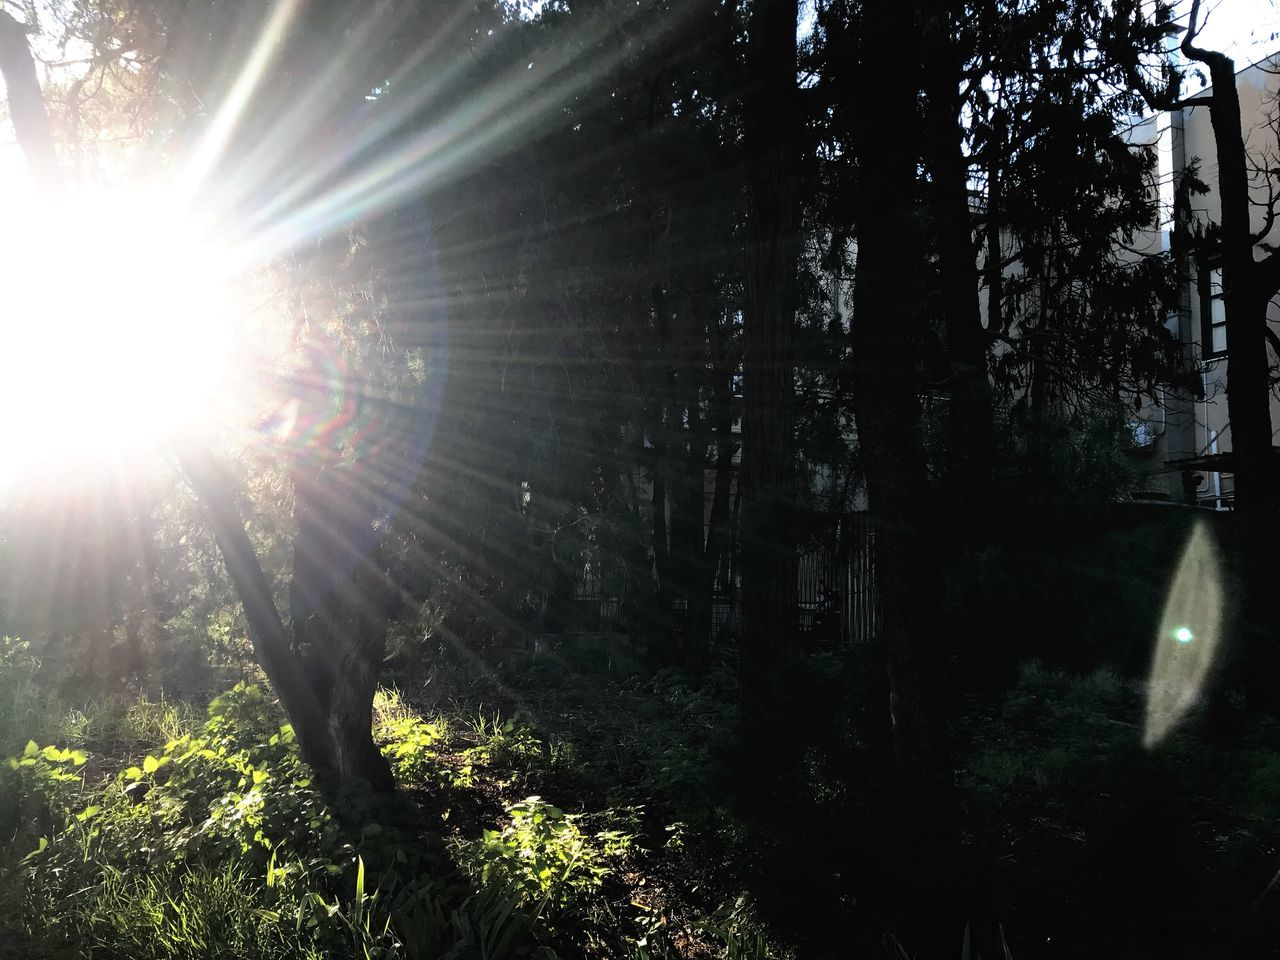 sunlight, plant, tree, lens flare, sunbeam, forest, nature, land, growth, beauty in nature, tranquility, sun, day, no people, sunny, trunk, sky, woodland, tree trunk, tranquil scene, outdoors, streaming, bright, brightly lit, solar flare